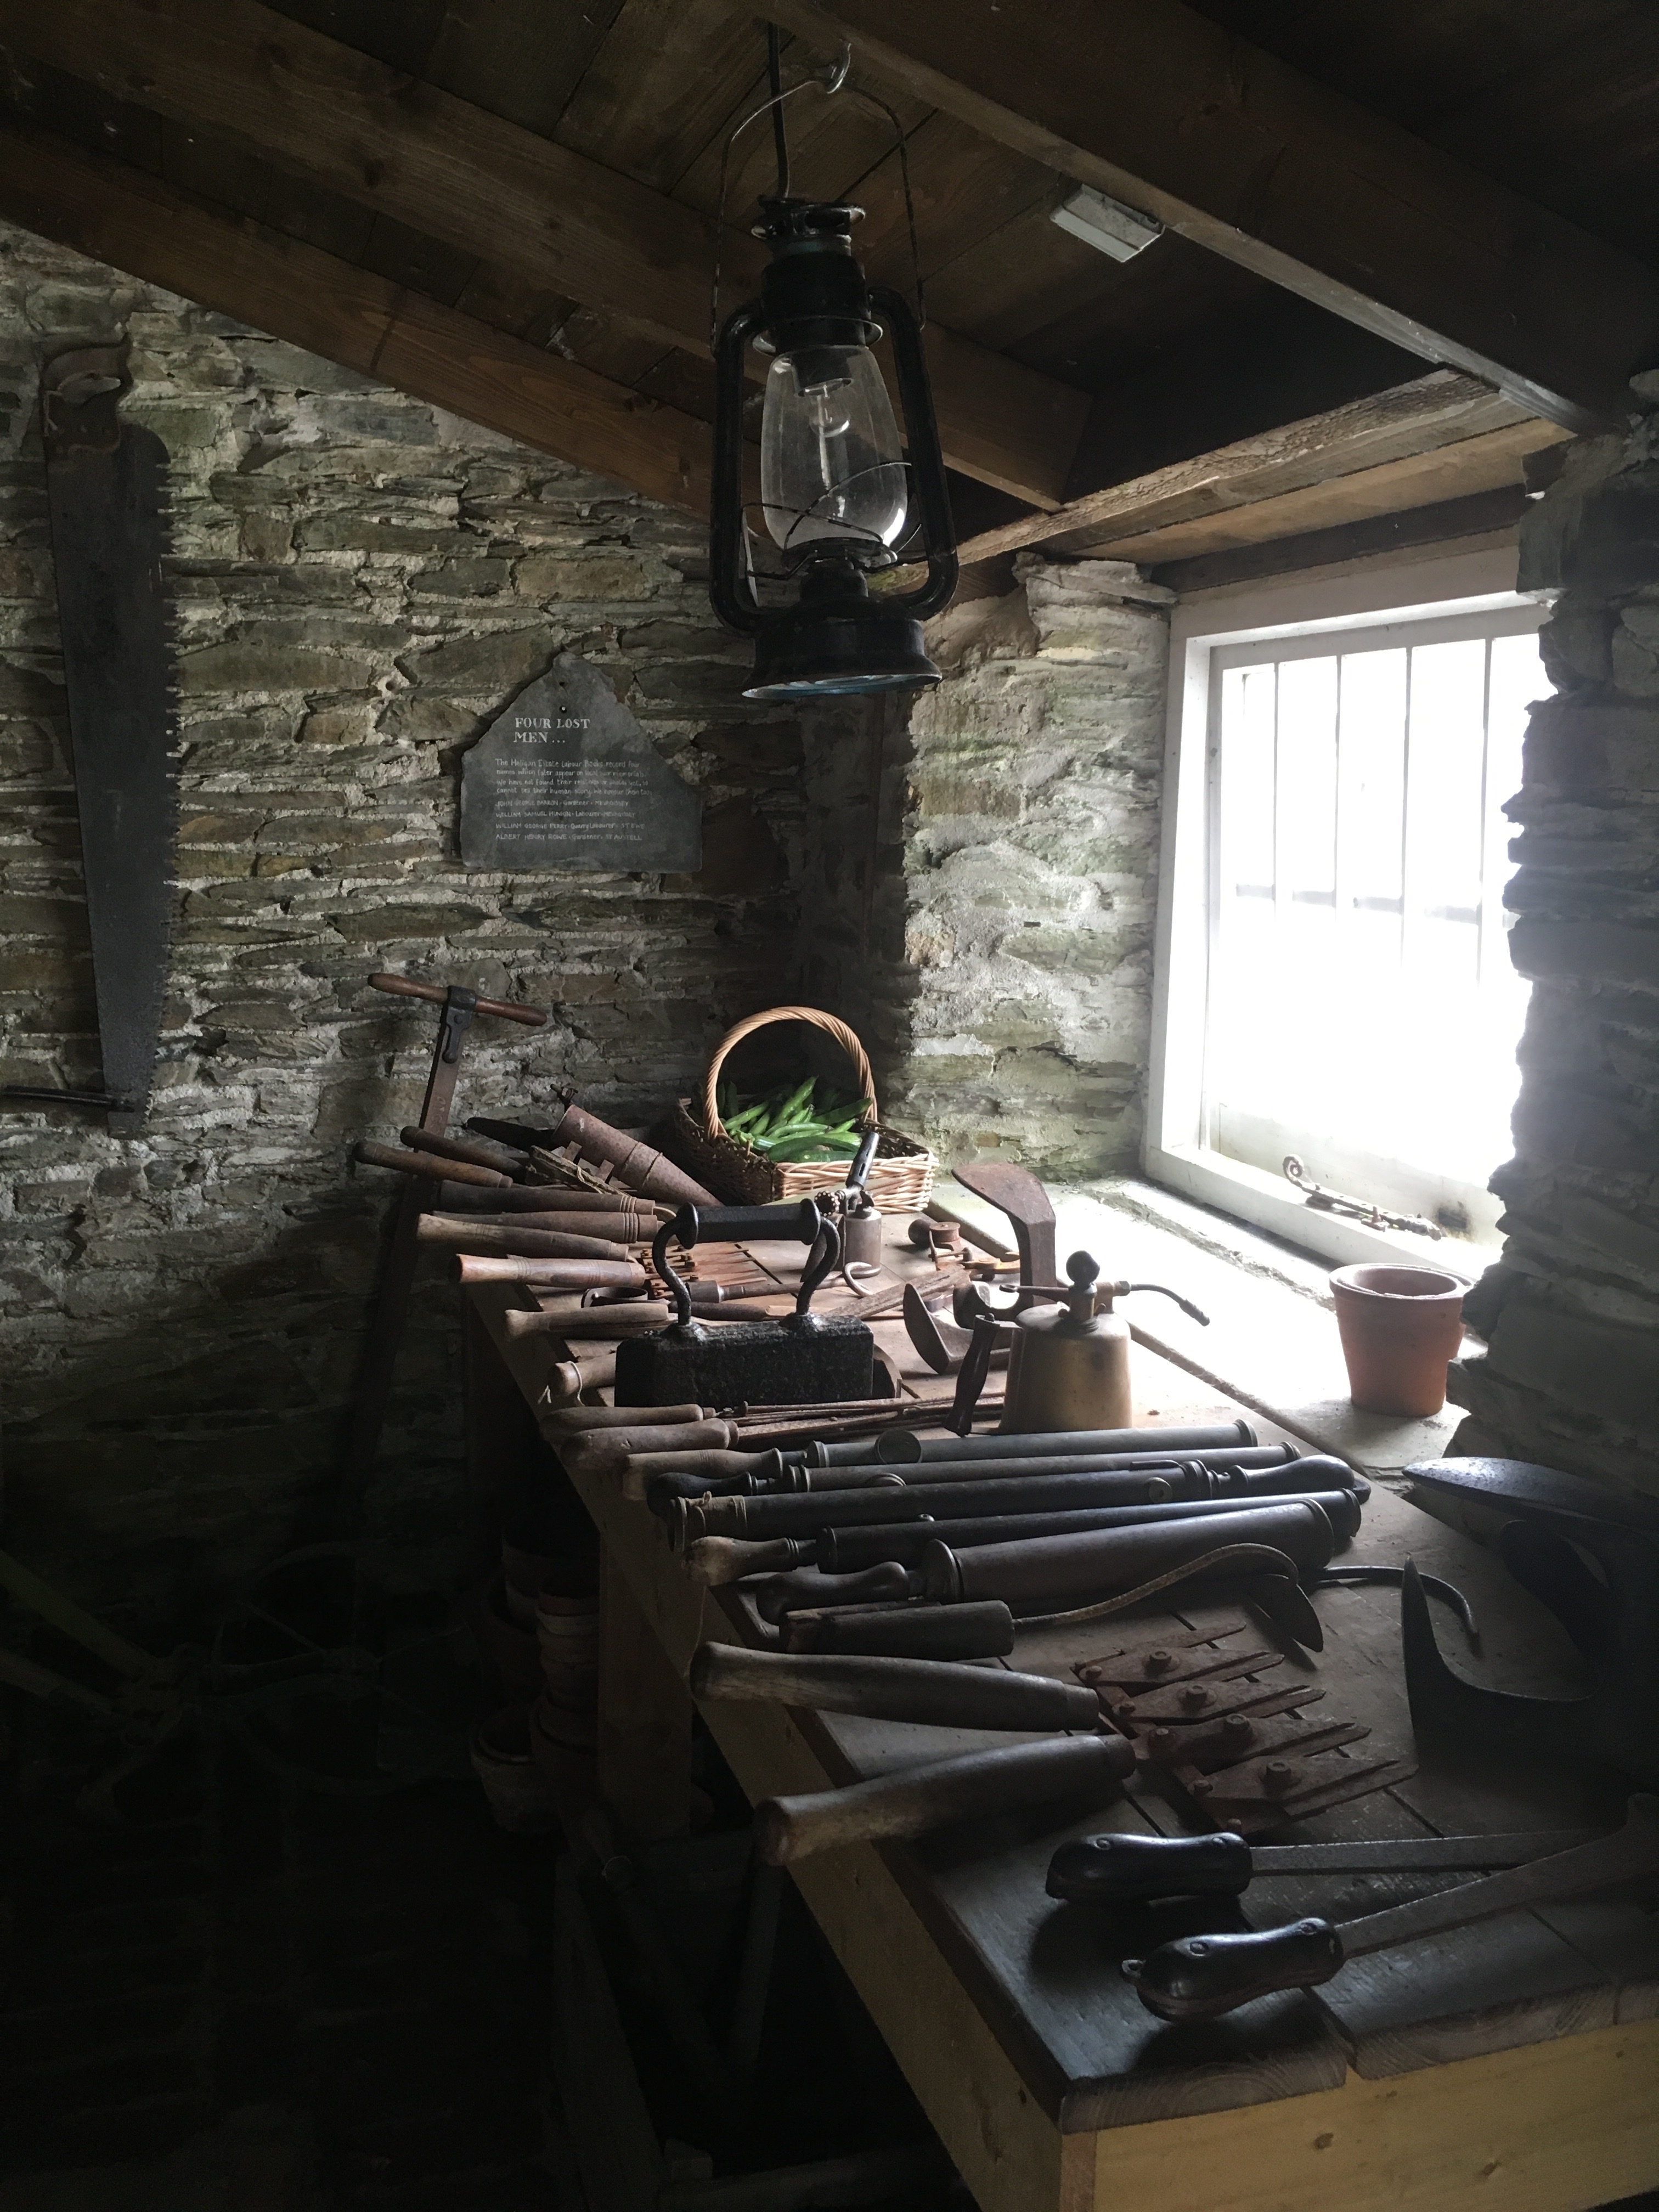 Garden shed and vintage garden tools at The Lost Gardens of Heligan, Cornwall, England